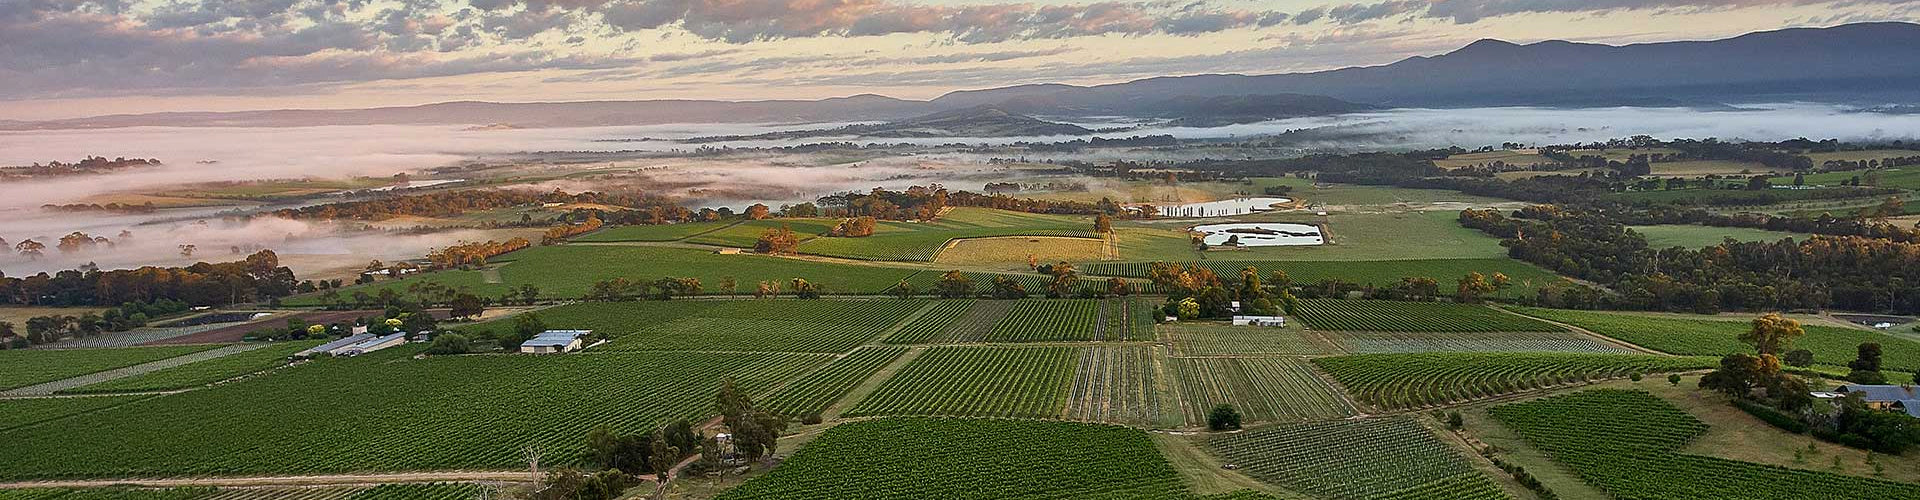 Ariel Image of Yarra Yering Vineyards in Australia's Yarra Valley